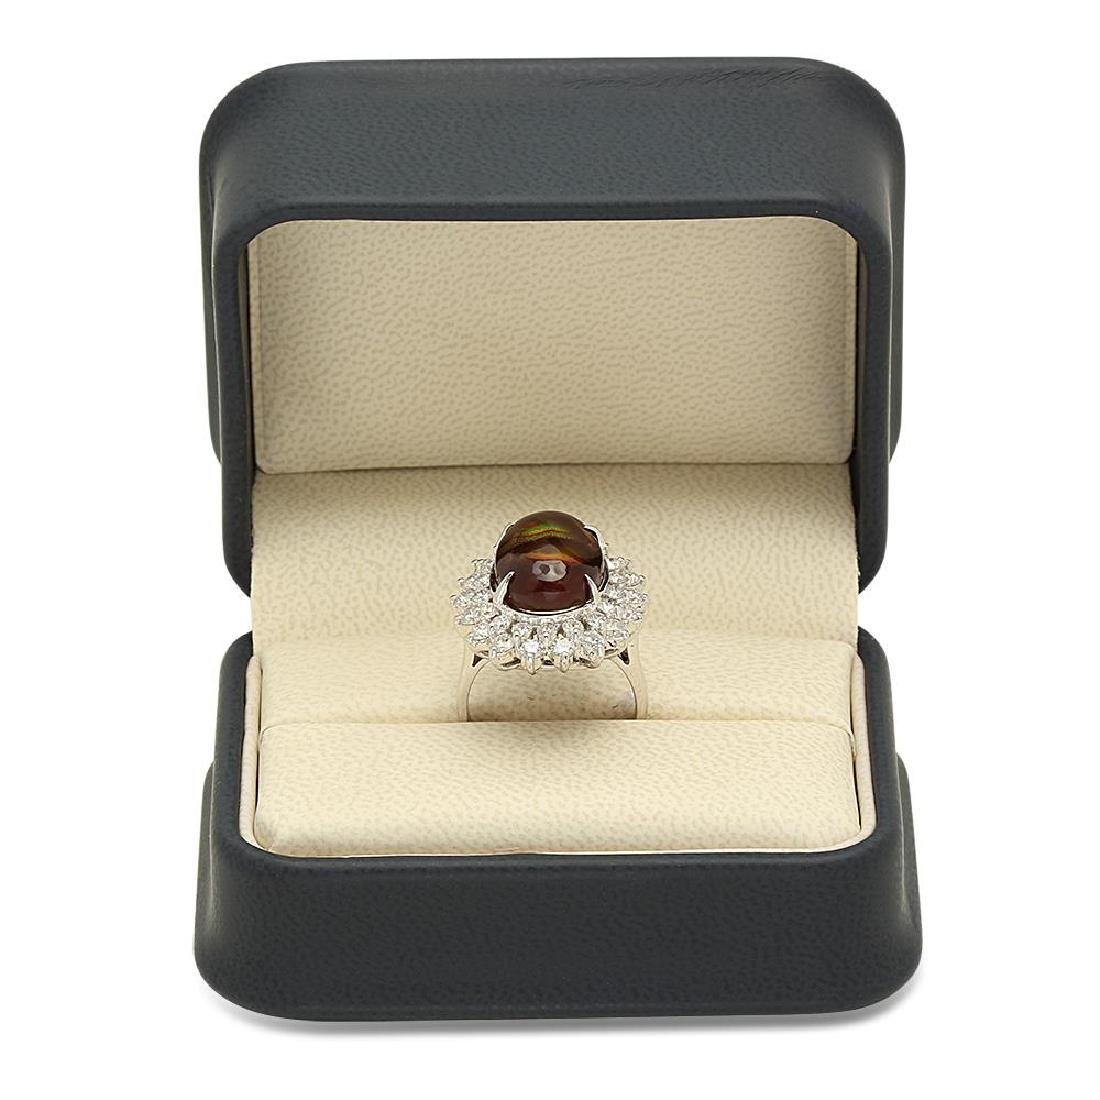 14K Gold 4.11ct Fire Agate 1.92cts Diamond Ring - 4